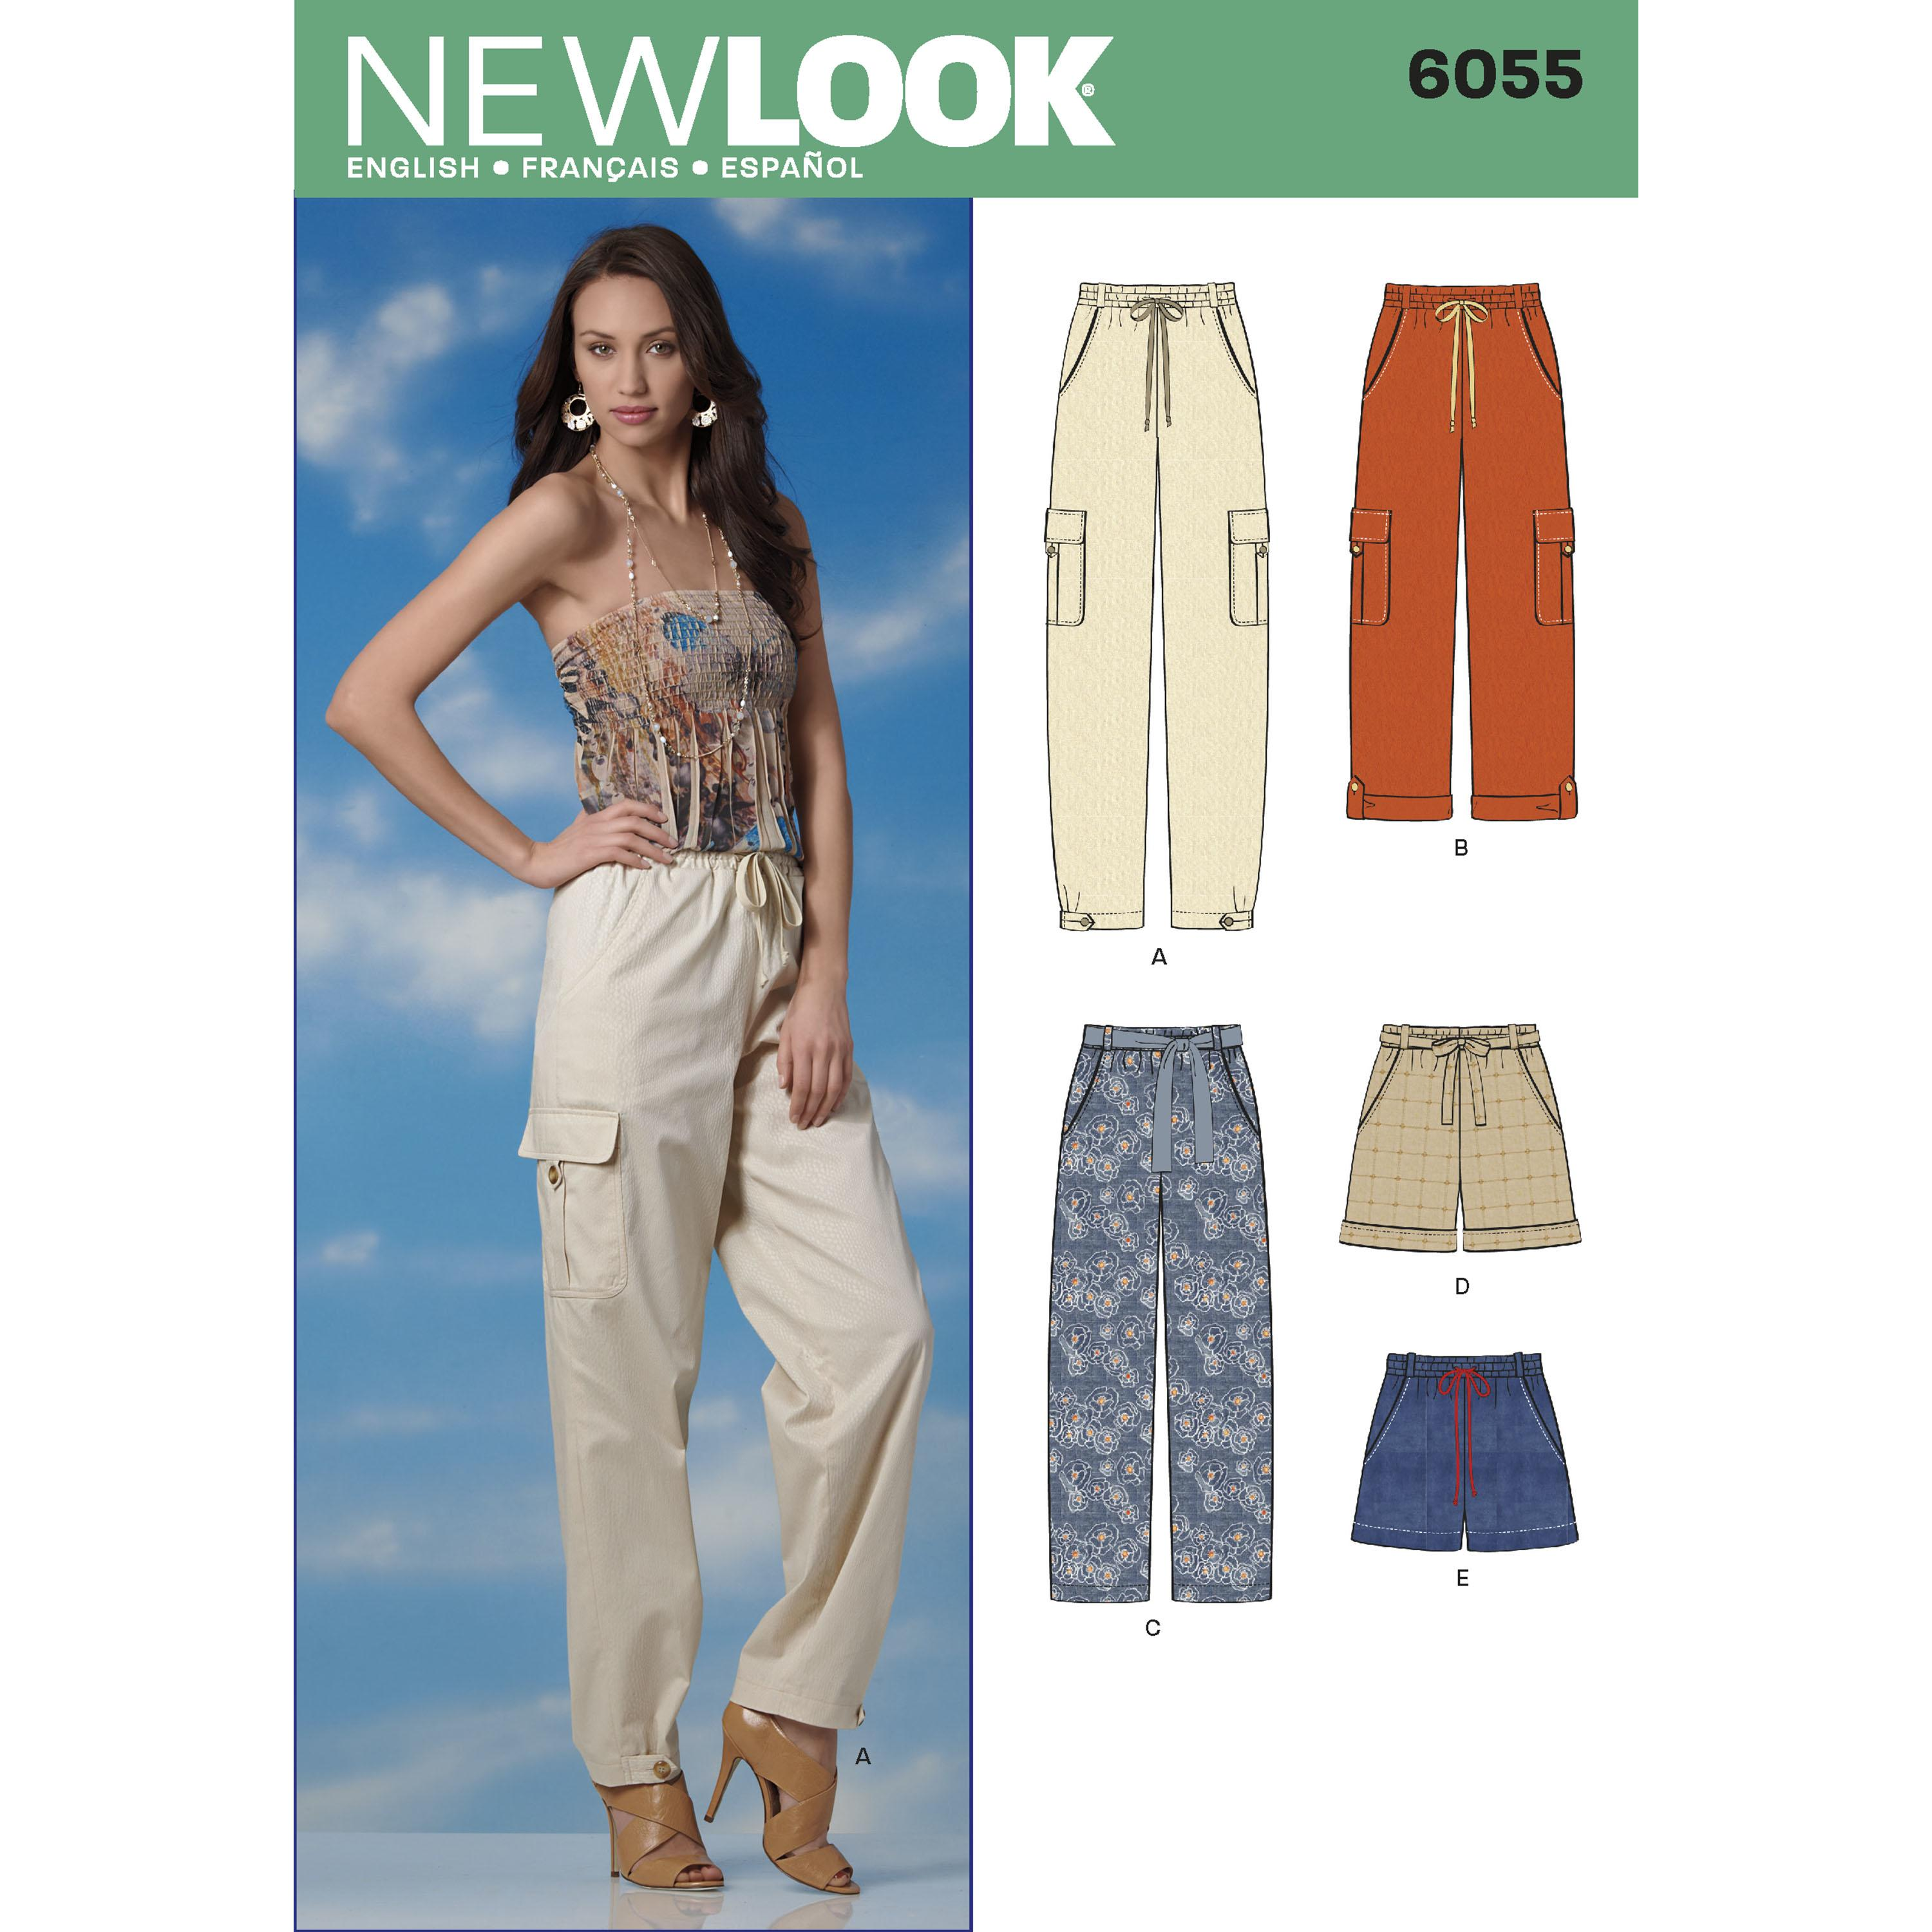 NewLook N6055 Misses' Pants & Shorts